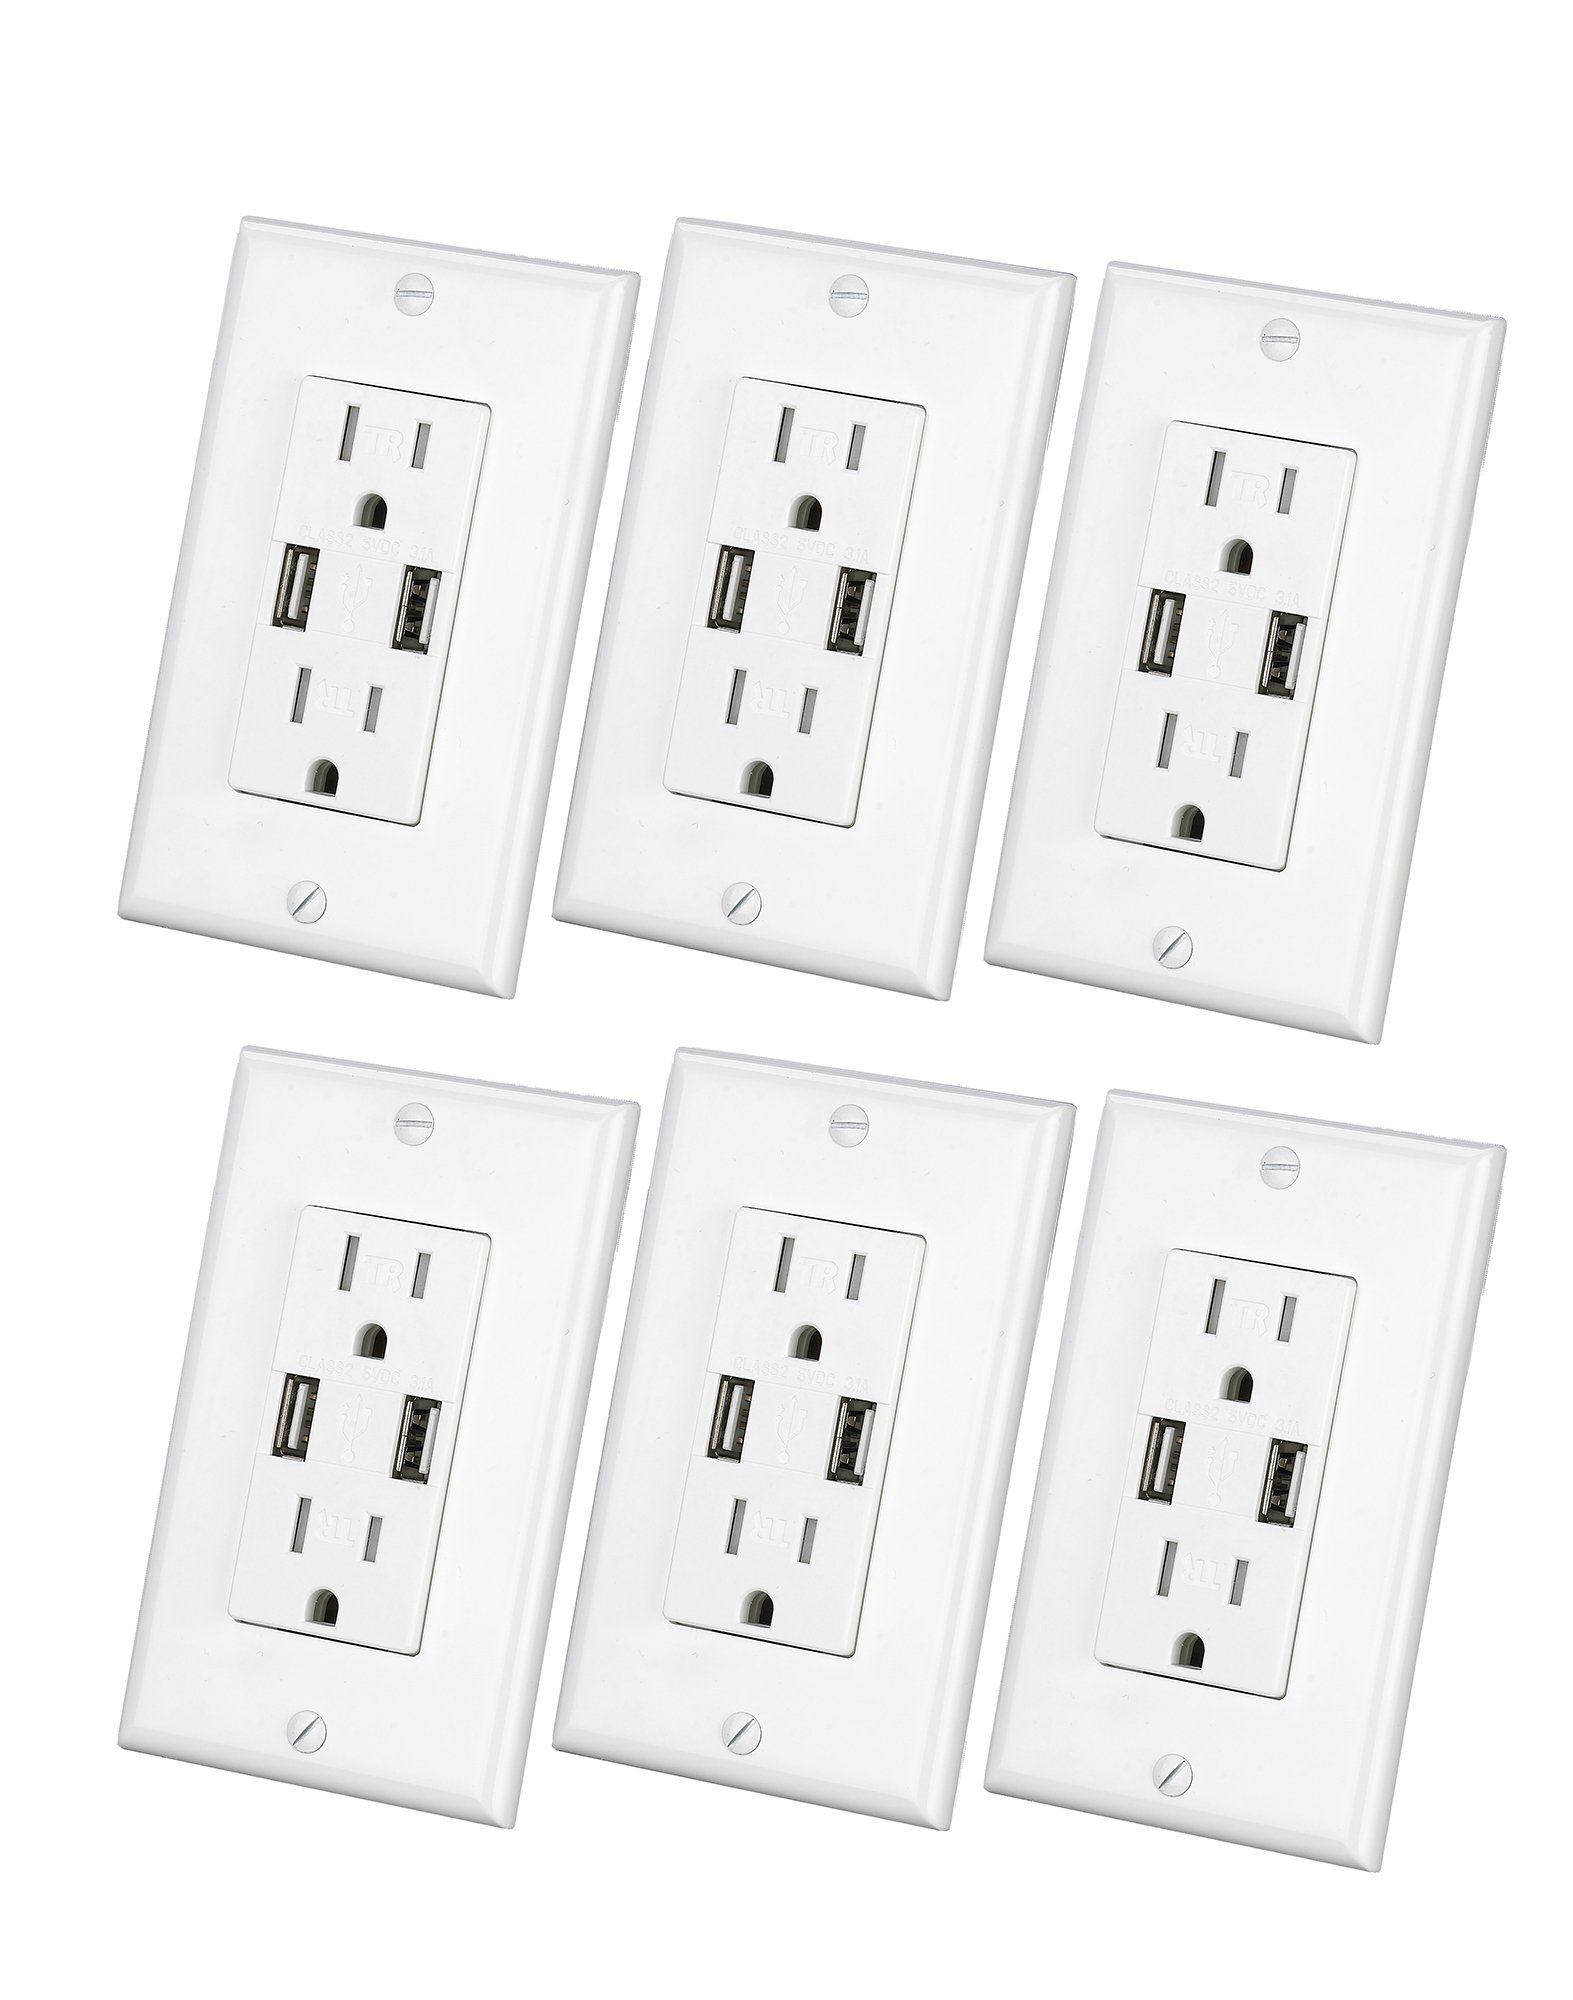 USB Charger Wall Outlet Dual High Speed Duplex Receptacle 15 Amp, Smart 4.8A Quick Charging Capability, Tamper Resistant Outlet Wall plate Included UL Listed White MICMI C48 (4.8A USB outlet 6pack)